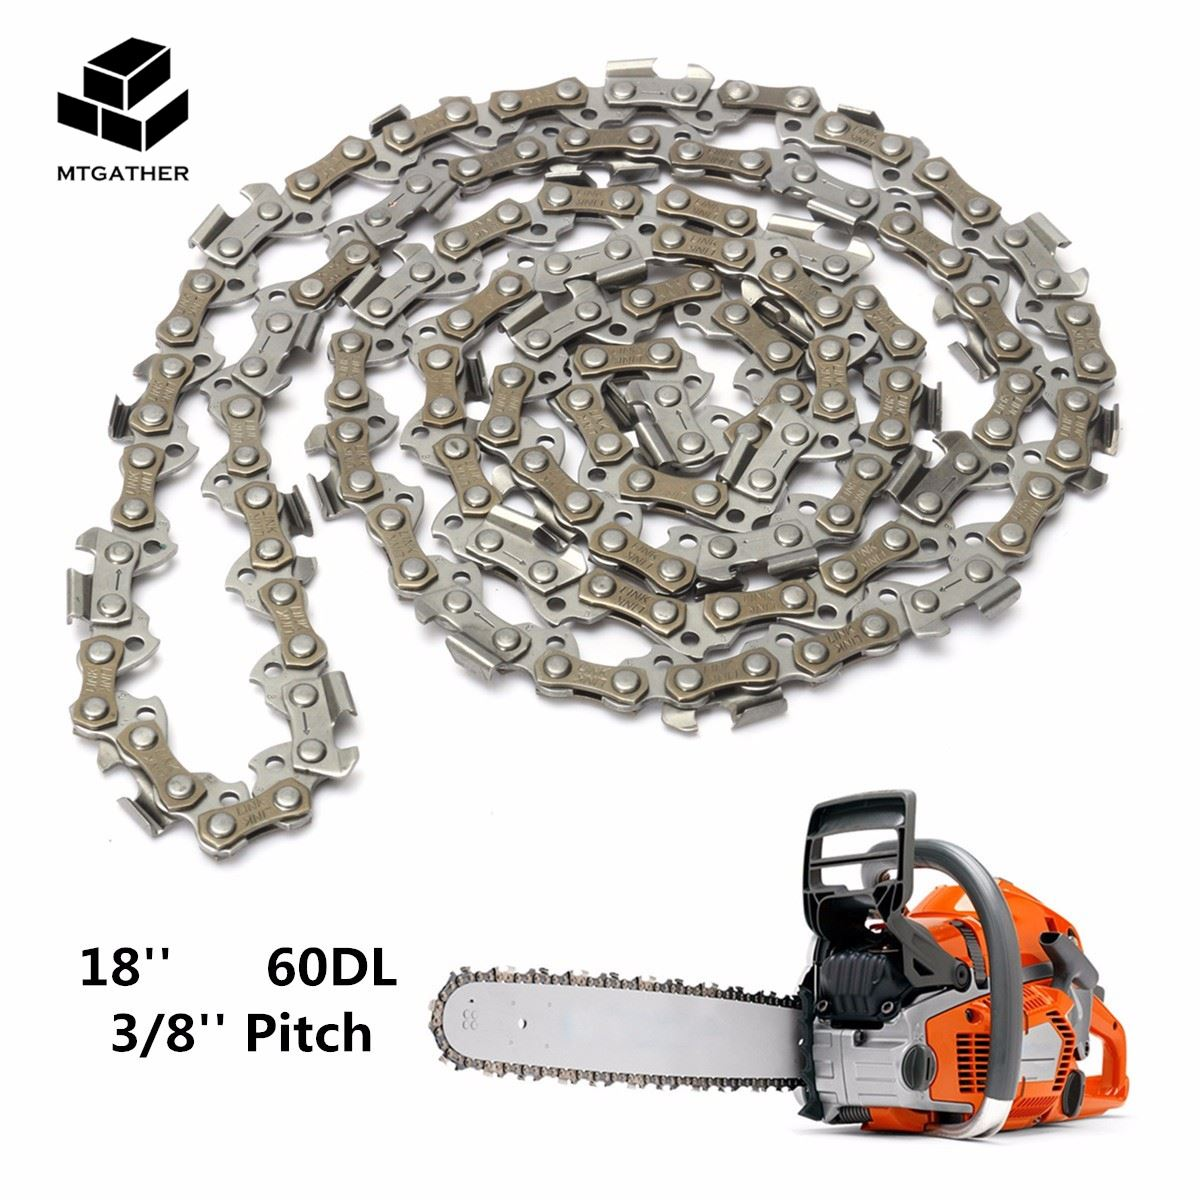 цена MTGATHER Substitution Chainsaw Saw Mill Chain Blade 18'' 60 Drive Link 3/8'' Pitch 050 Gauge for Wood cutting Chainsaw Parts